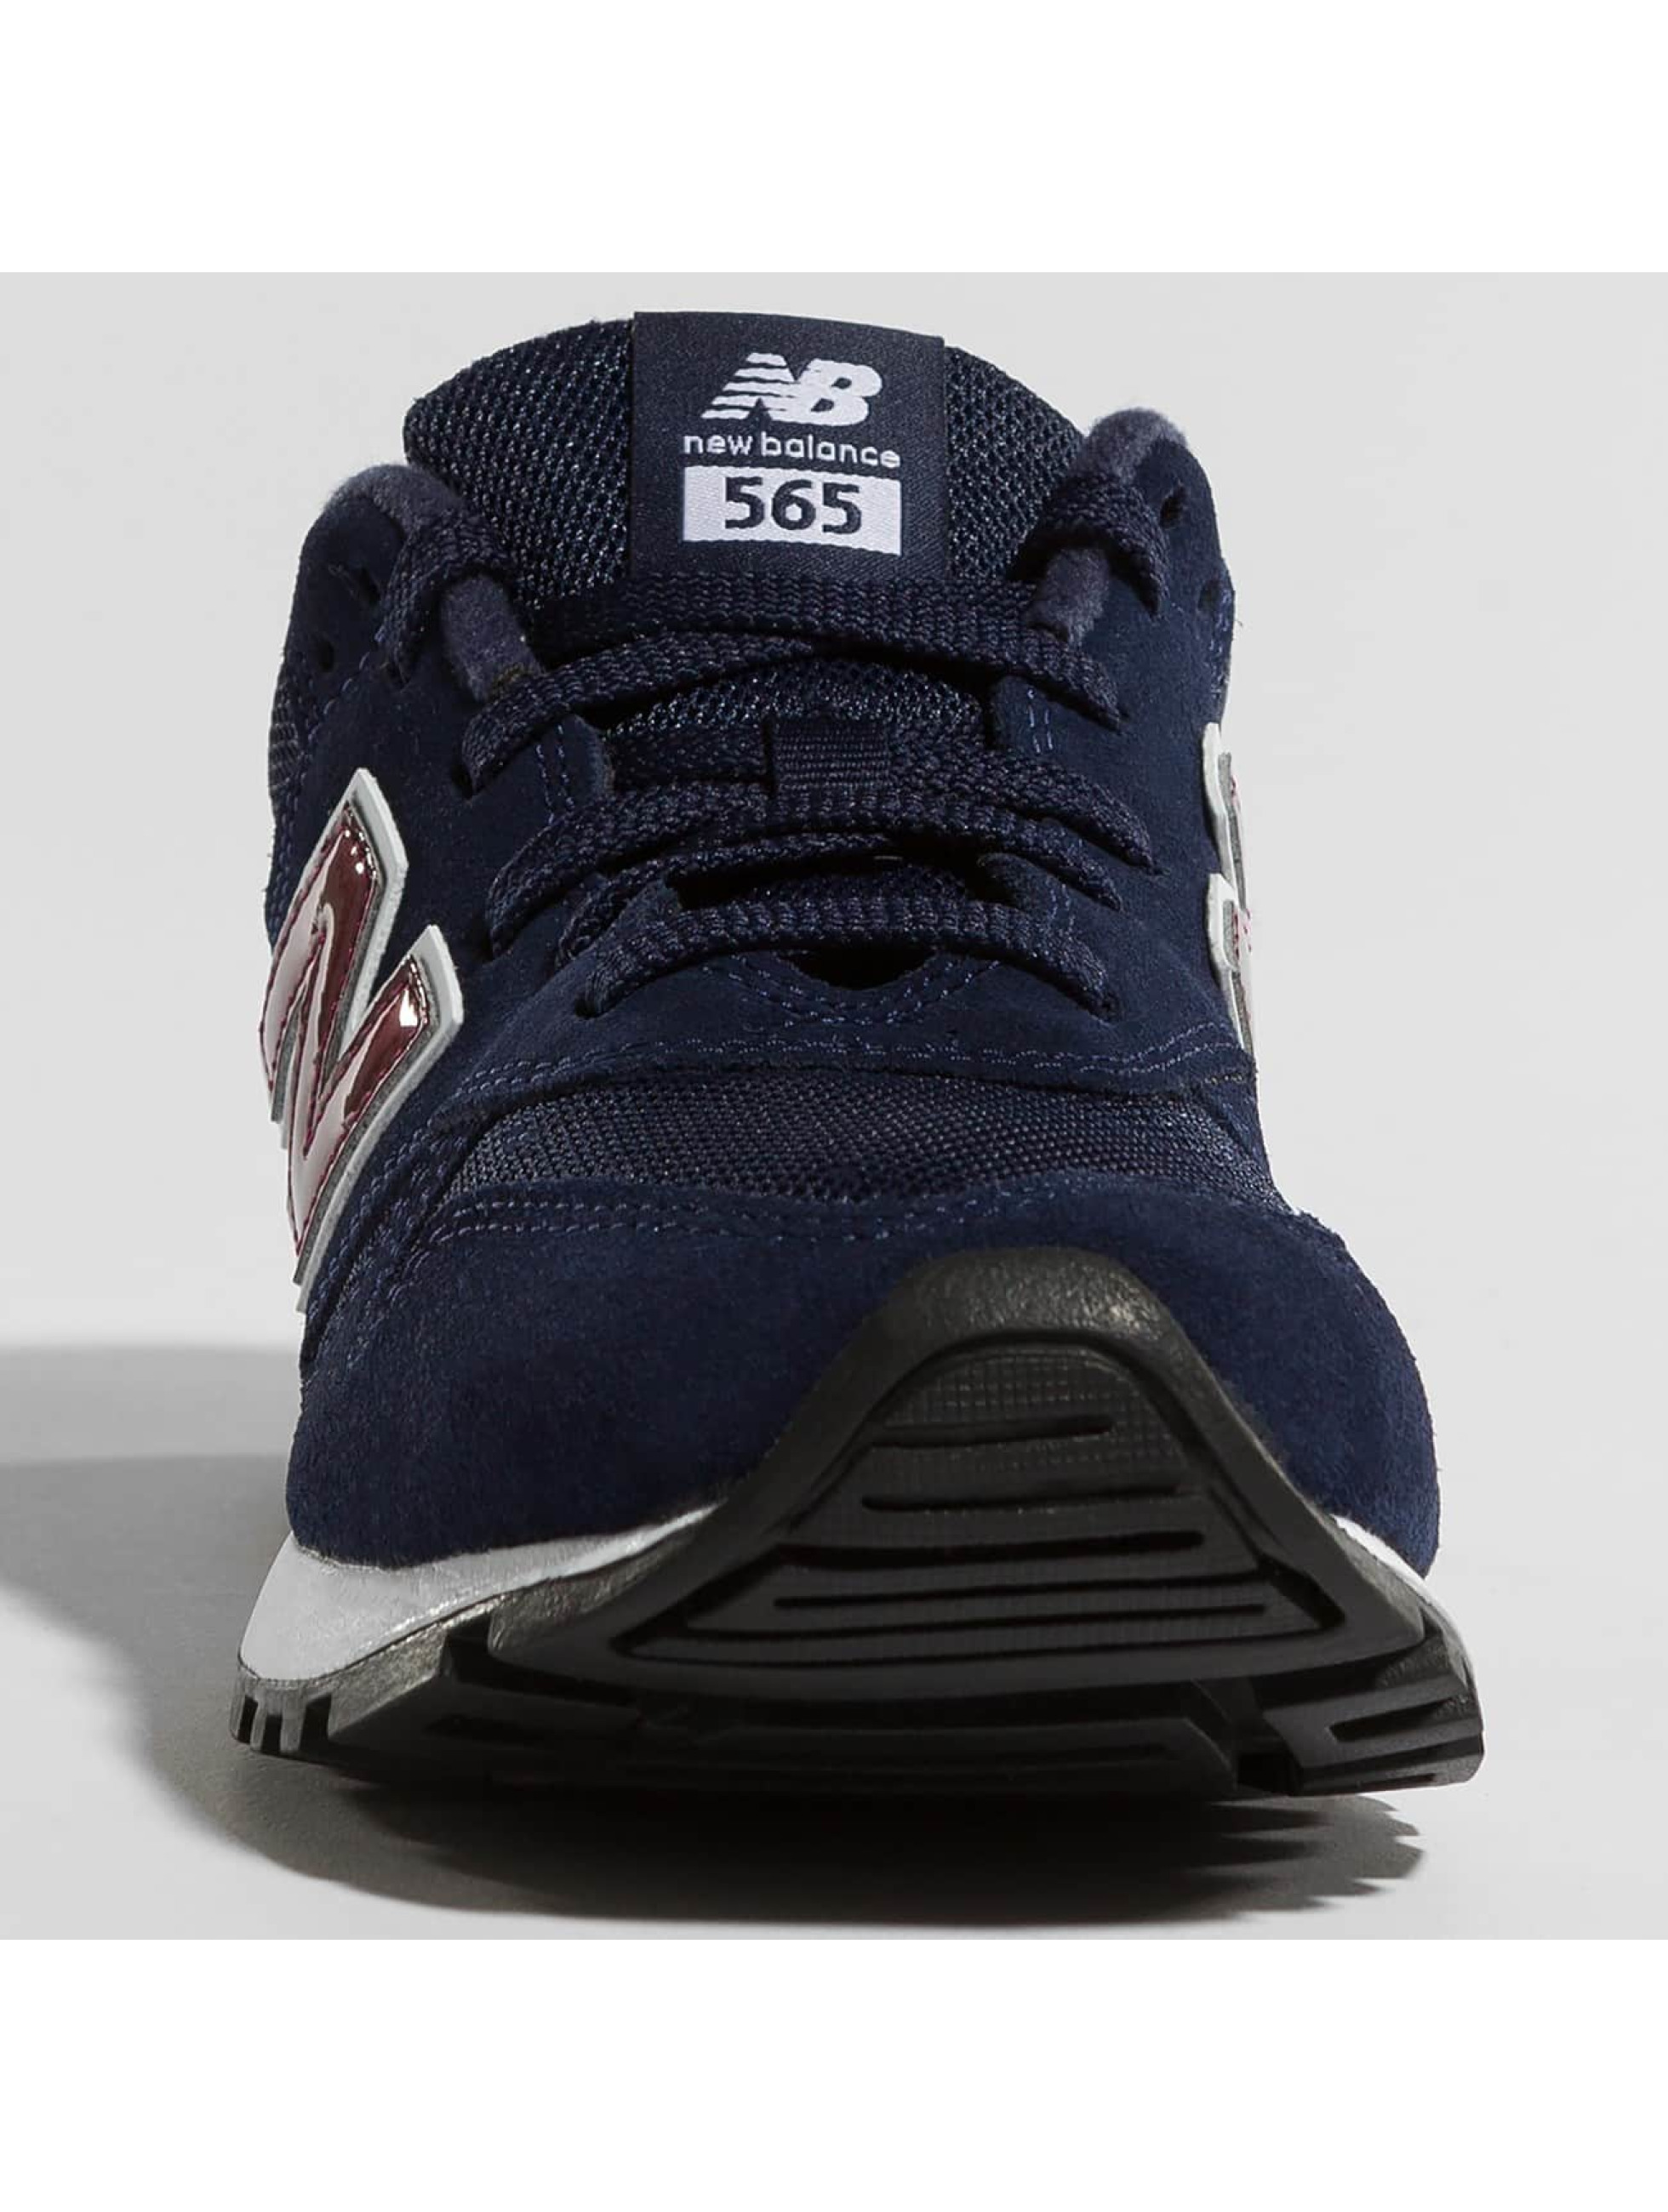 New Balance Sneakers Wl565 blue